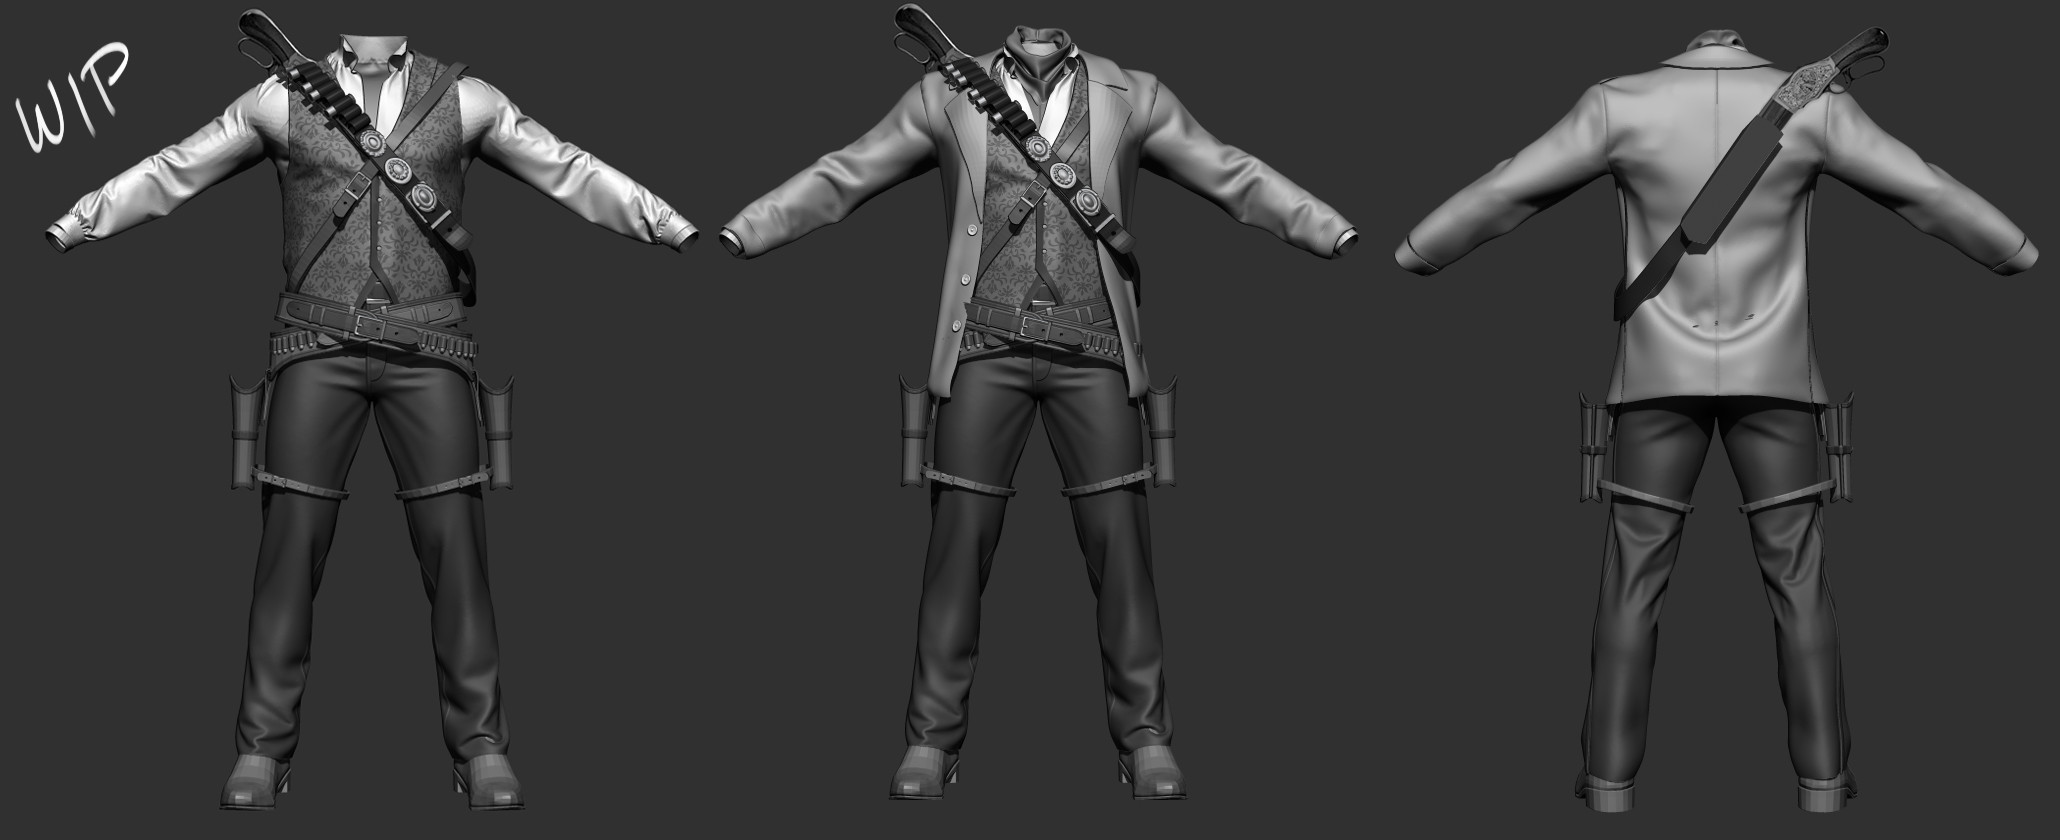 Some first pass 3d mockups that I made for potential outfits